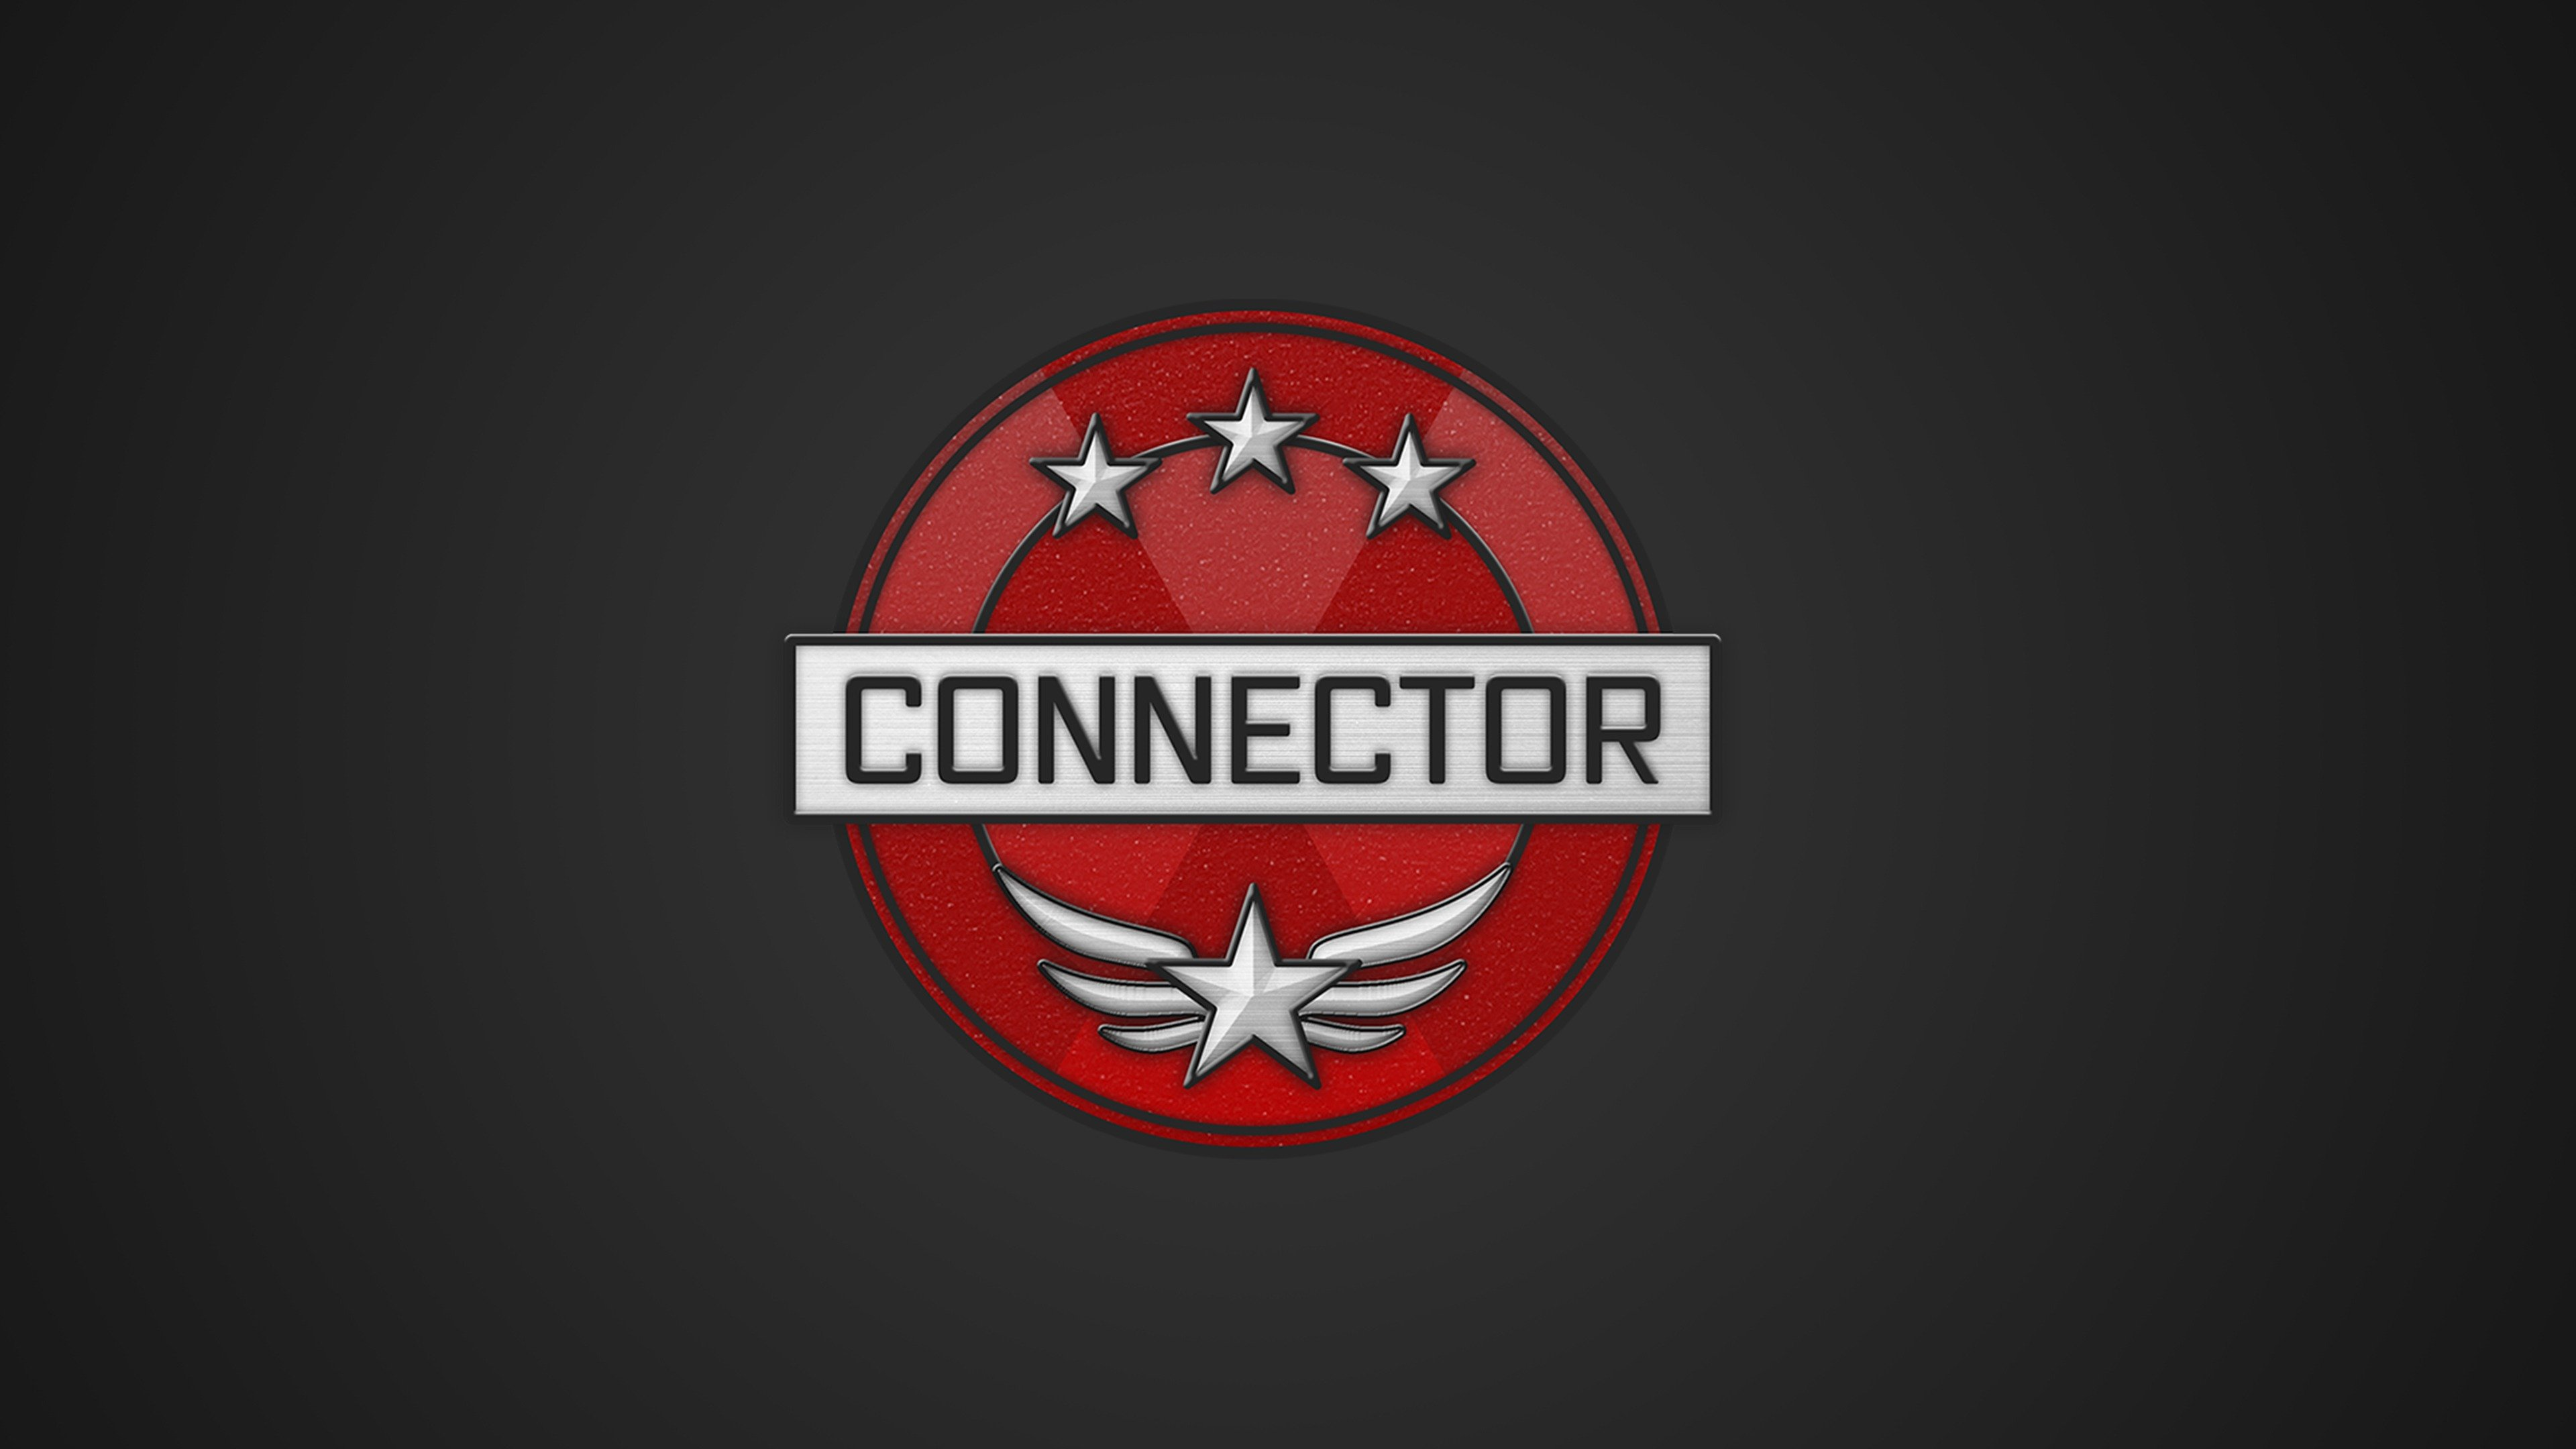 Connector Compressed